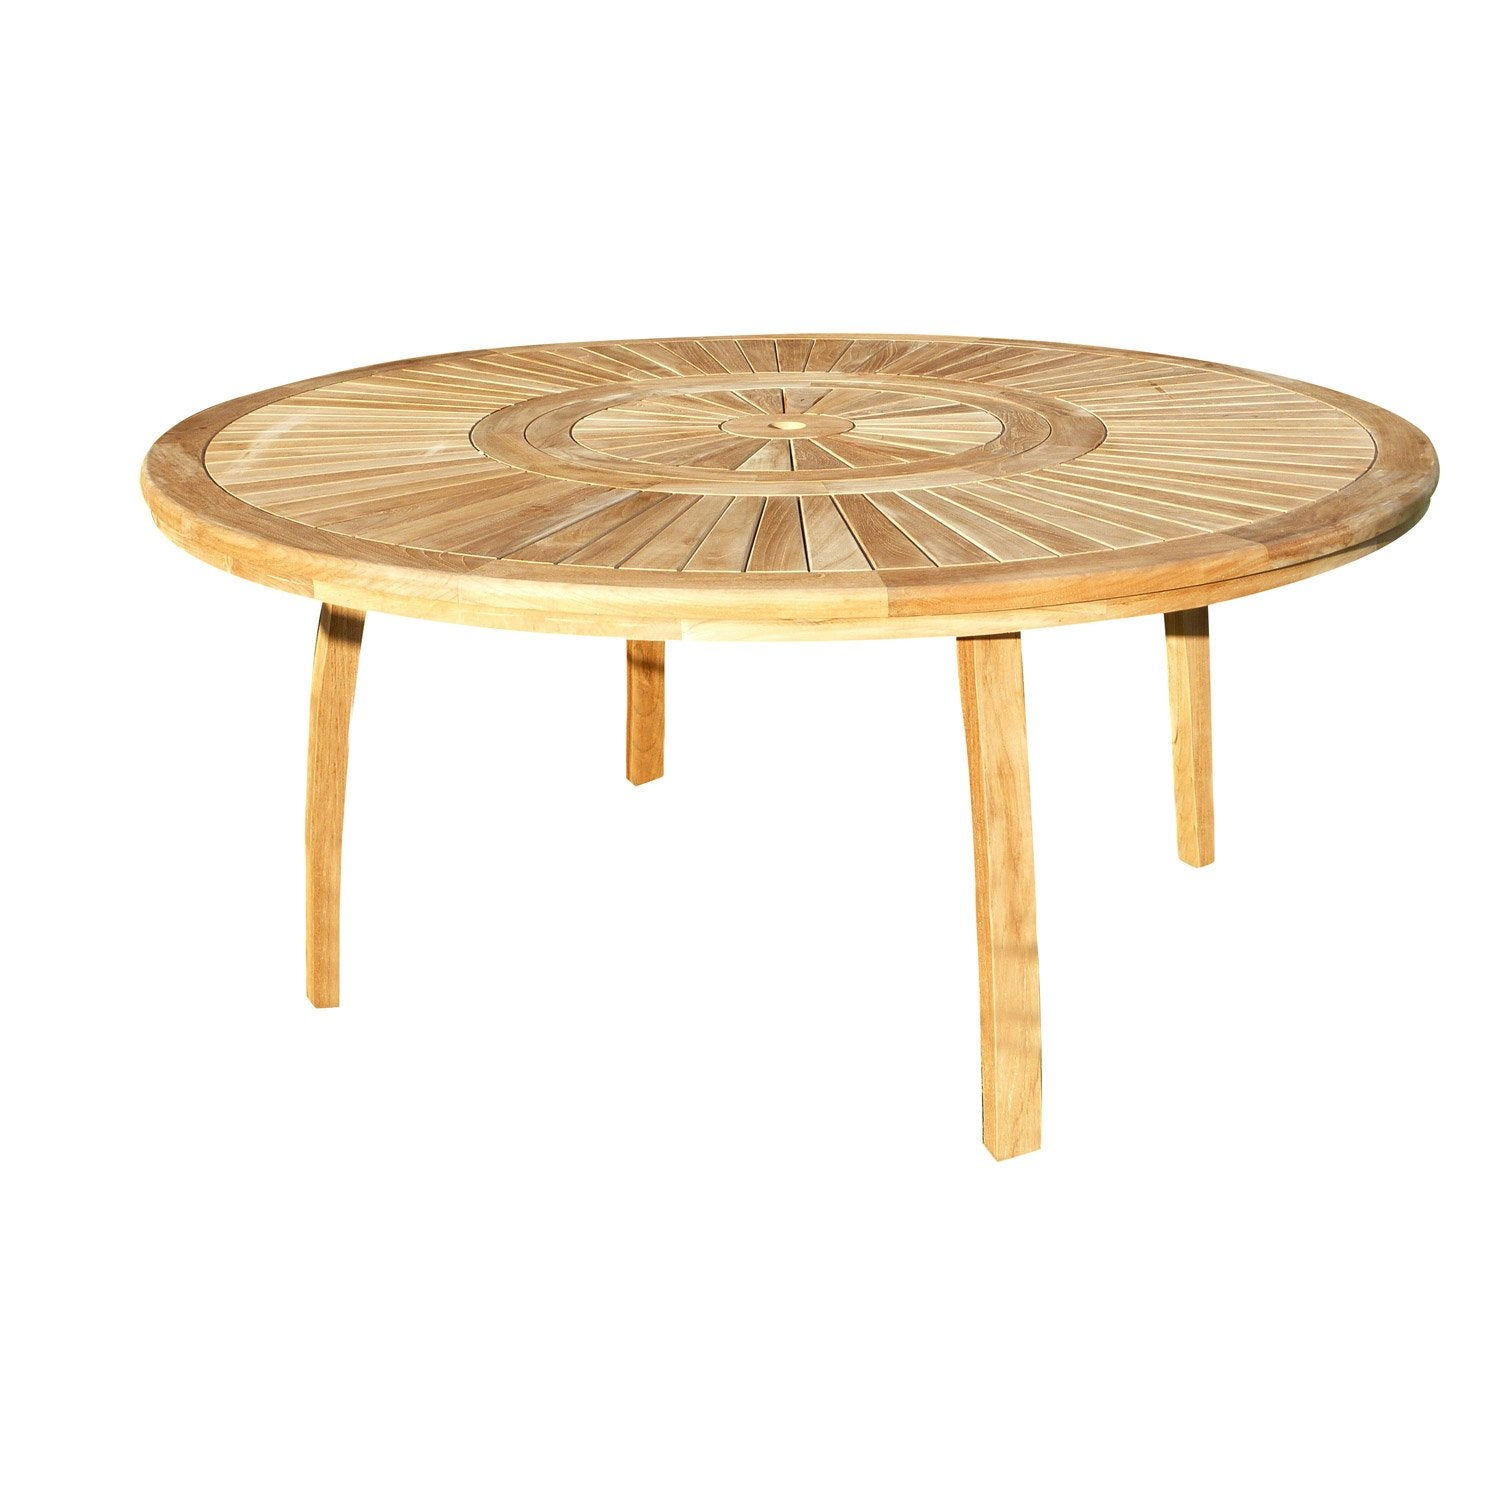 Table de jardin orion ronde naturel 8 personnes leroy merlin - Table 8 personne ...